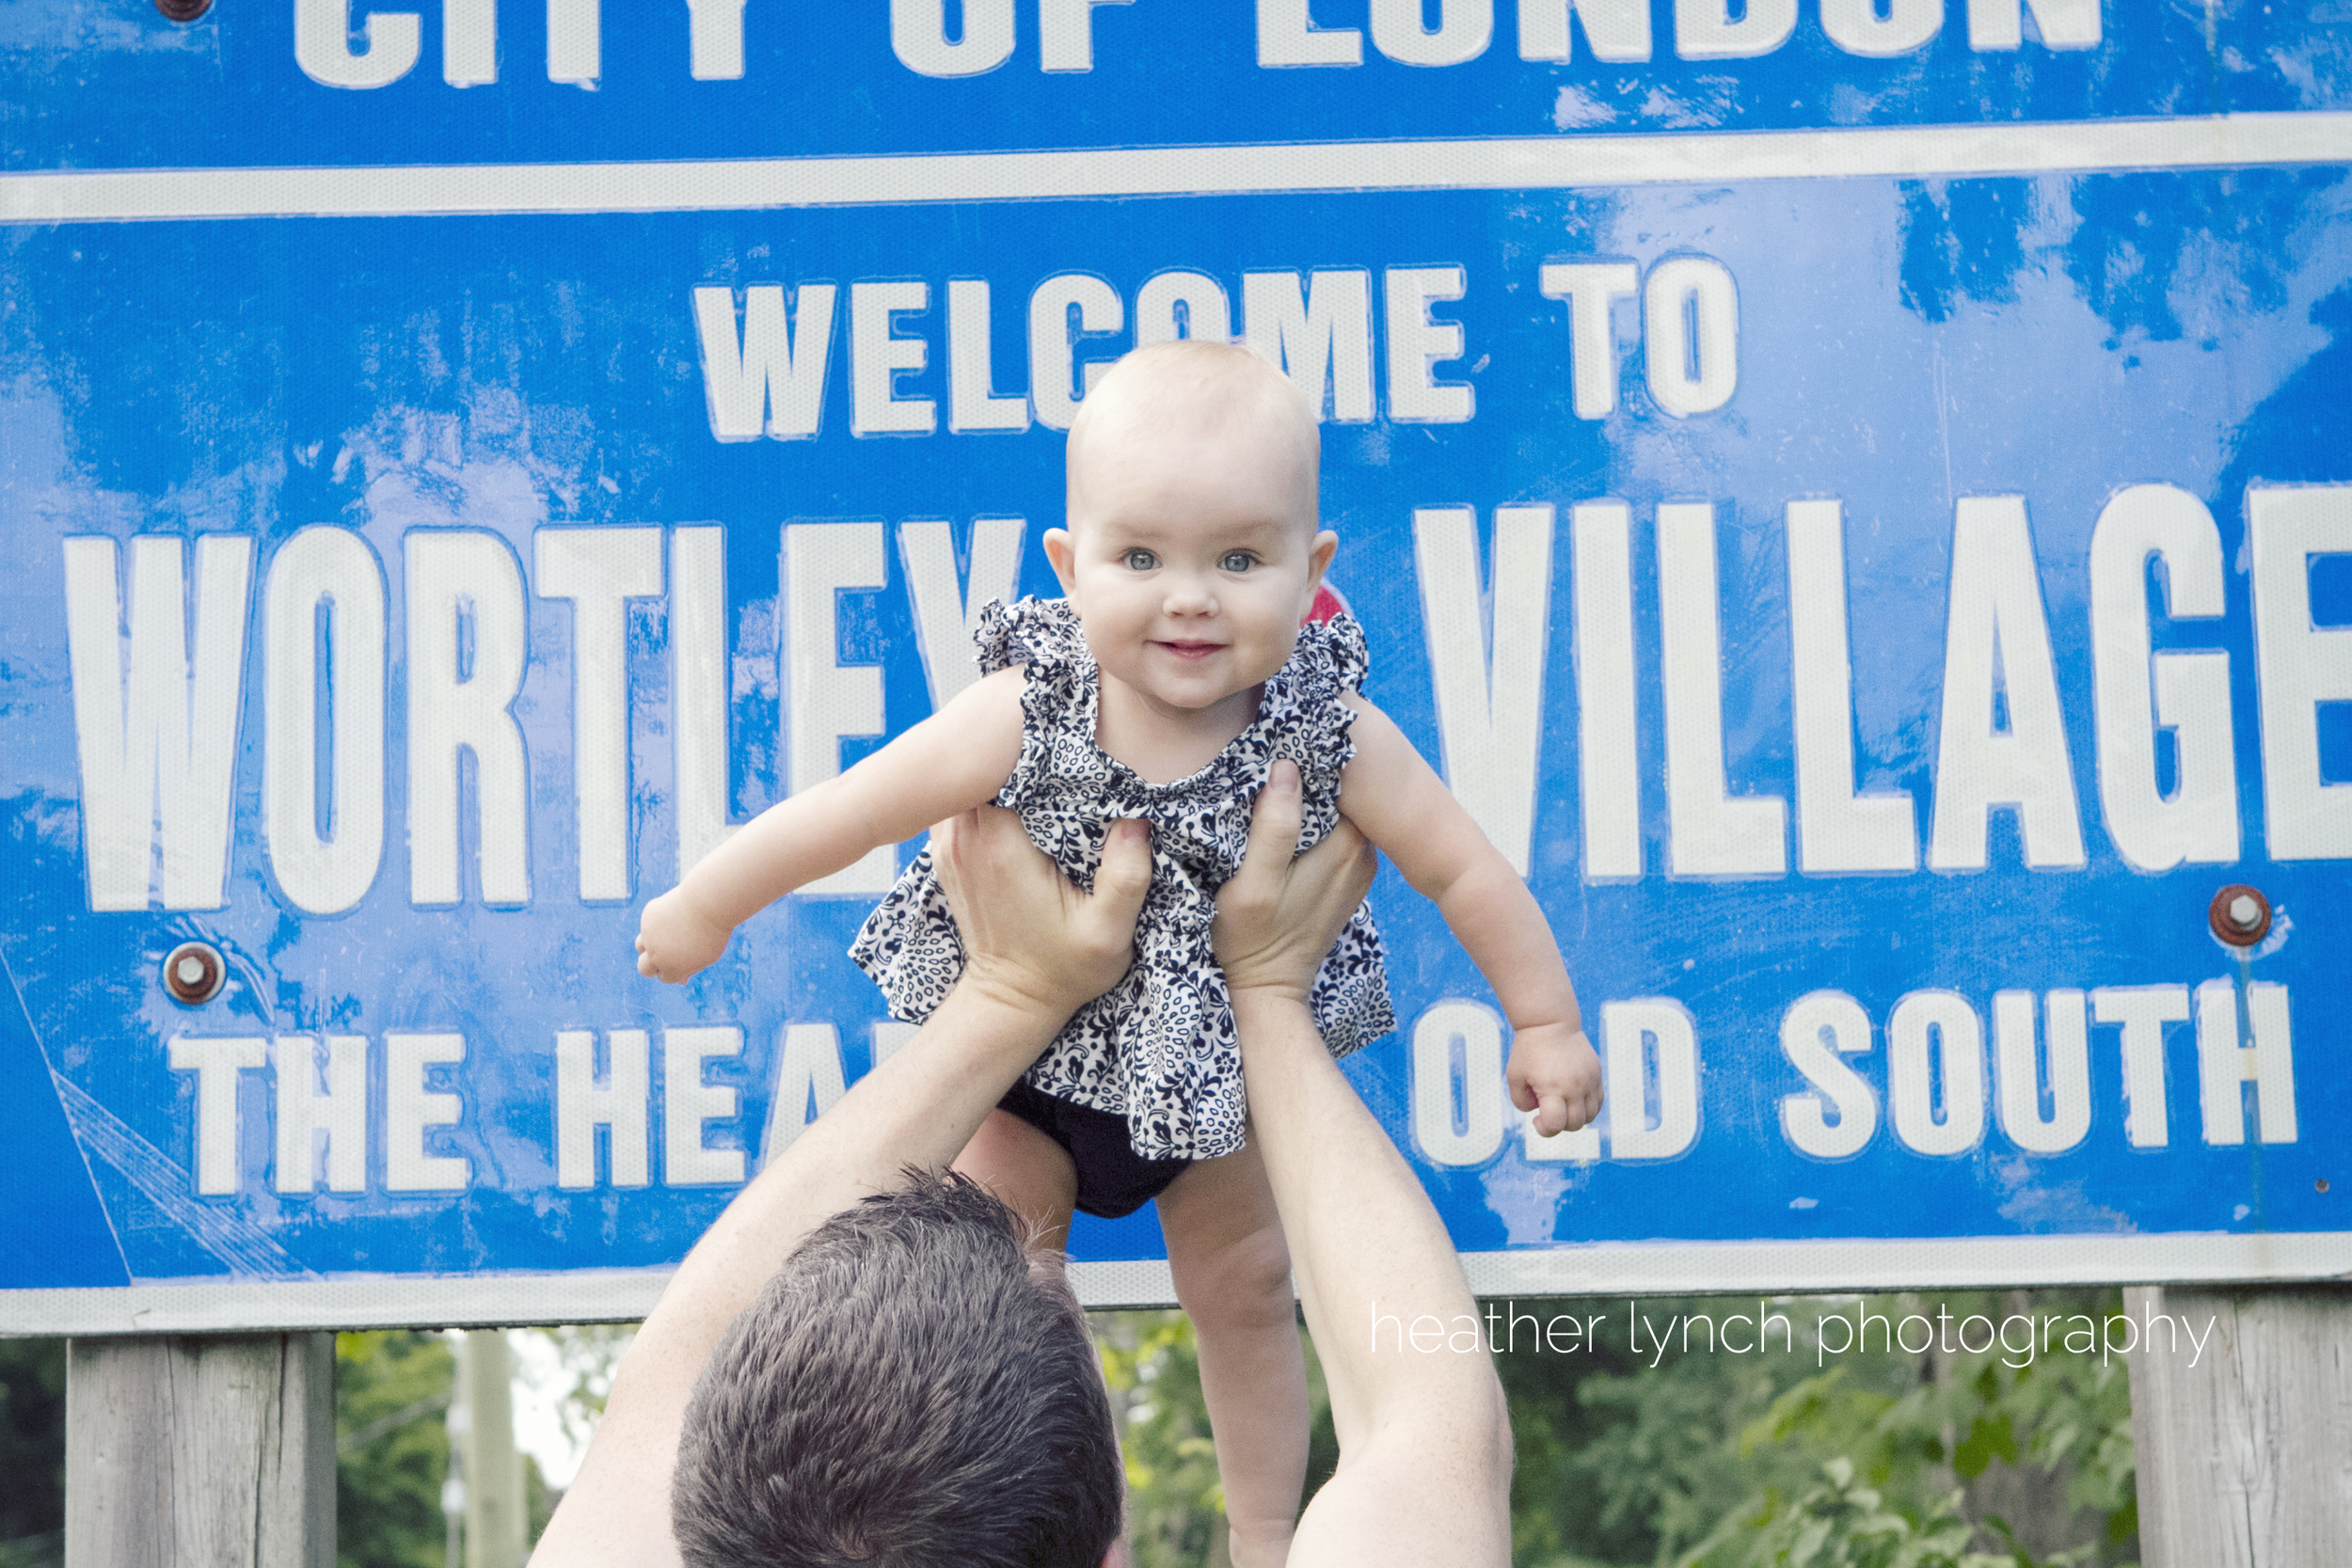 wortley village, the heart of old south, london ontario baby photographer, old south, the green, canada's best neighbourhood, the village, wortley road public school, wortley, heather lynch, heather lynch photography, south secondary school, south collegiate institute